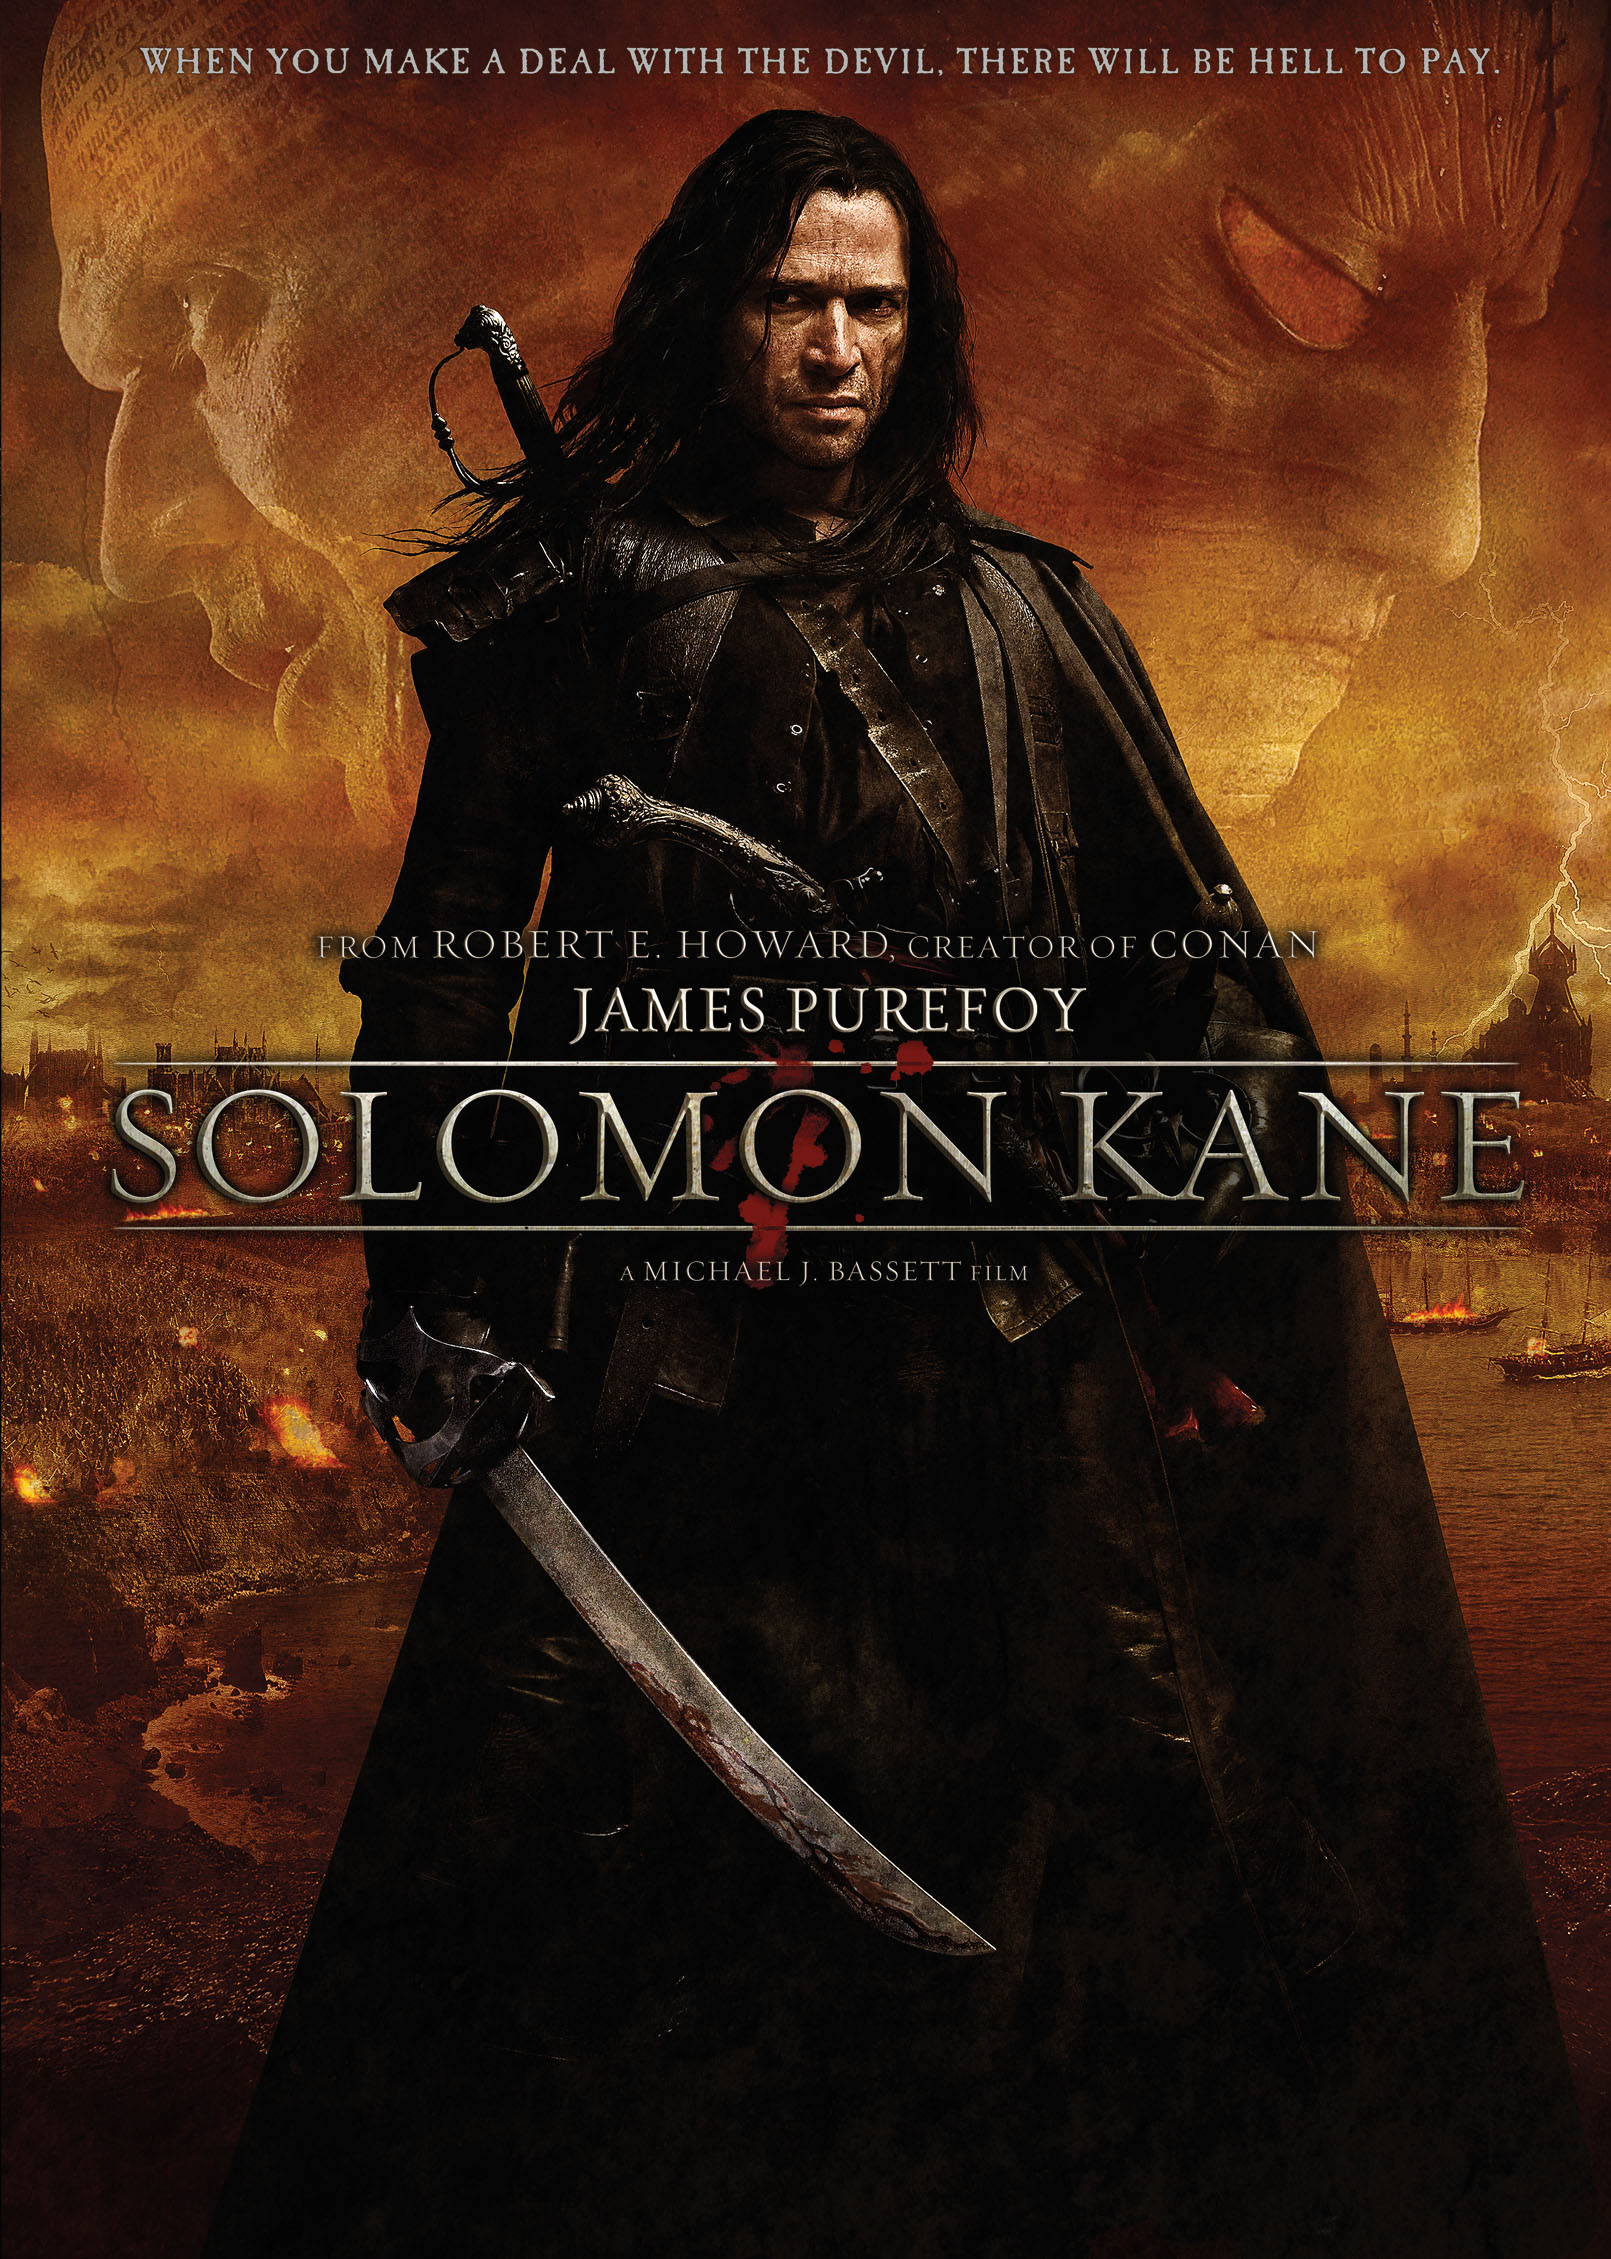 Solomon Kane DVD artwork Create a Poster, Win a Solomon Kane Prize Pack!